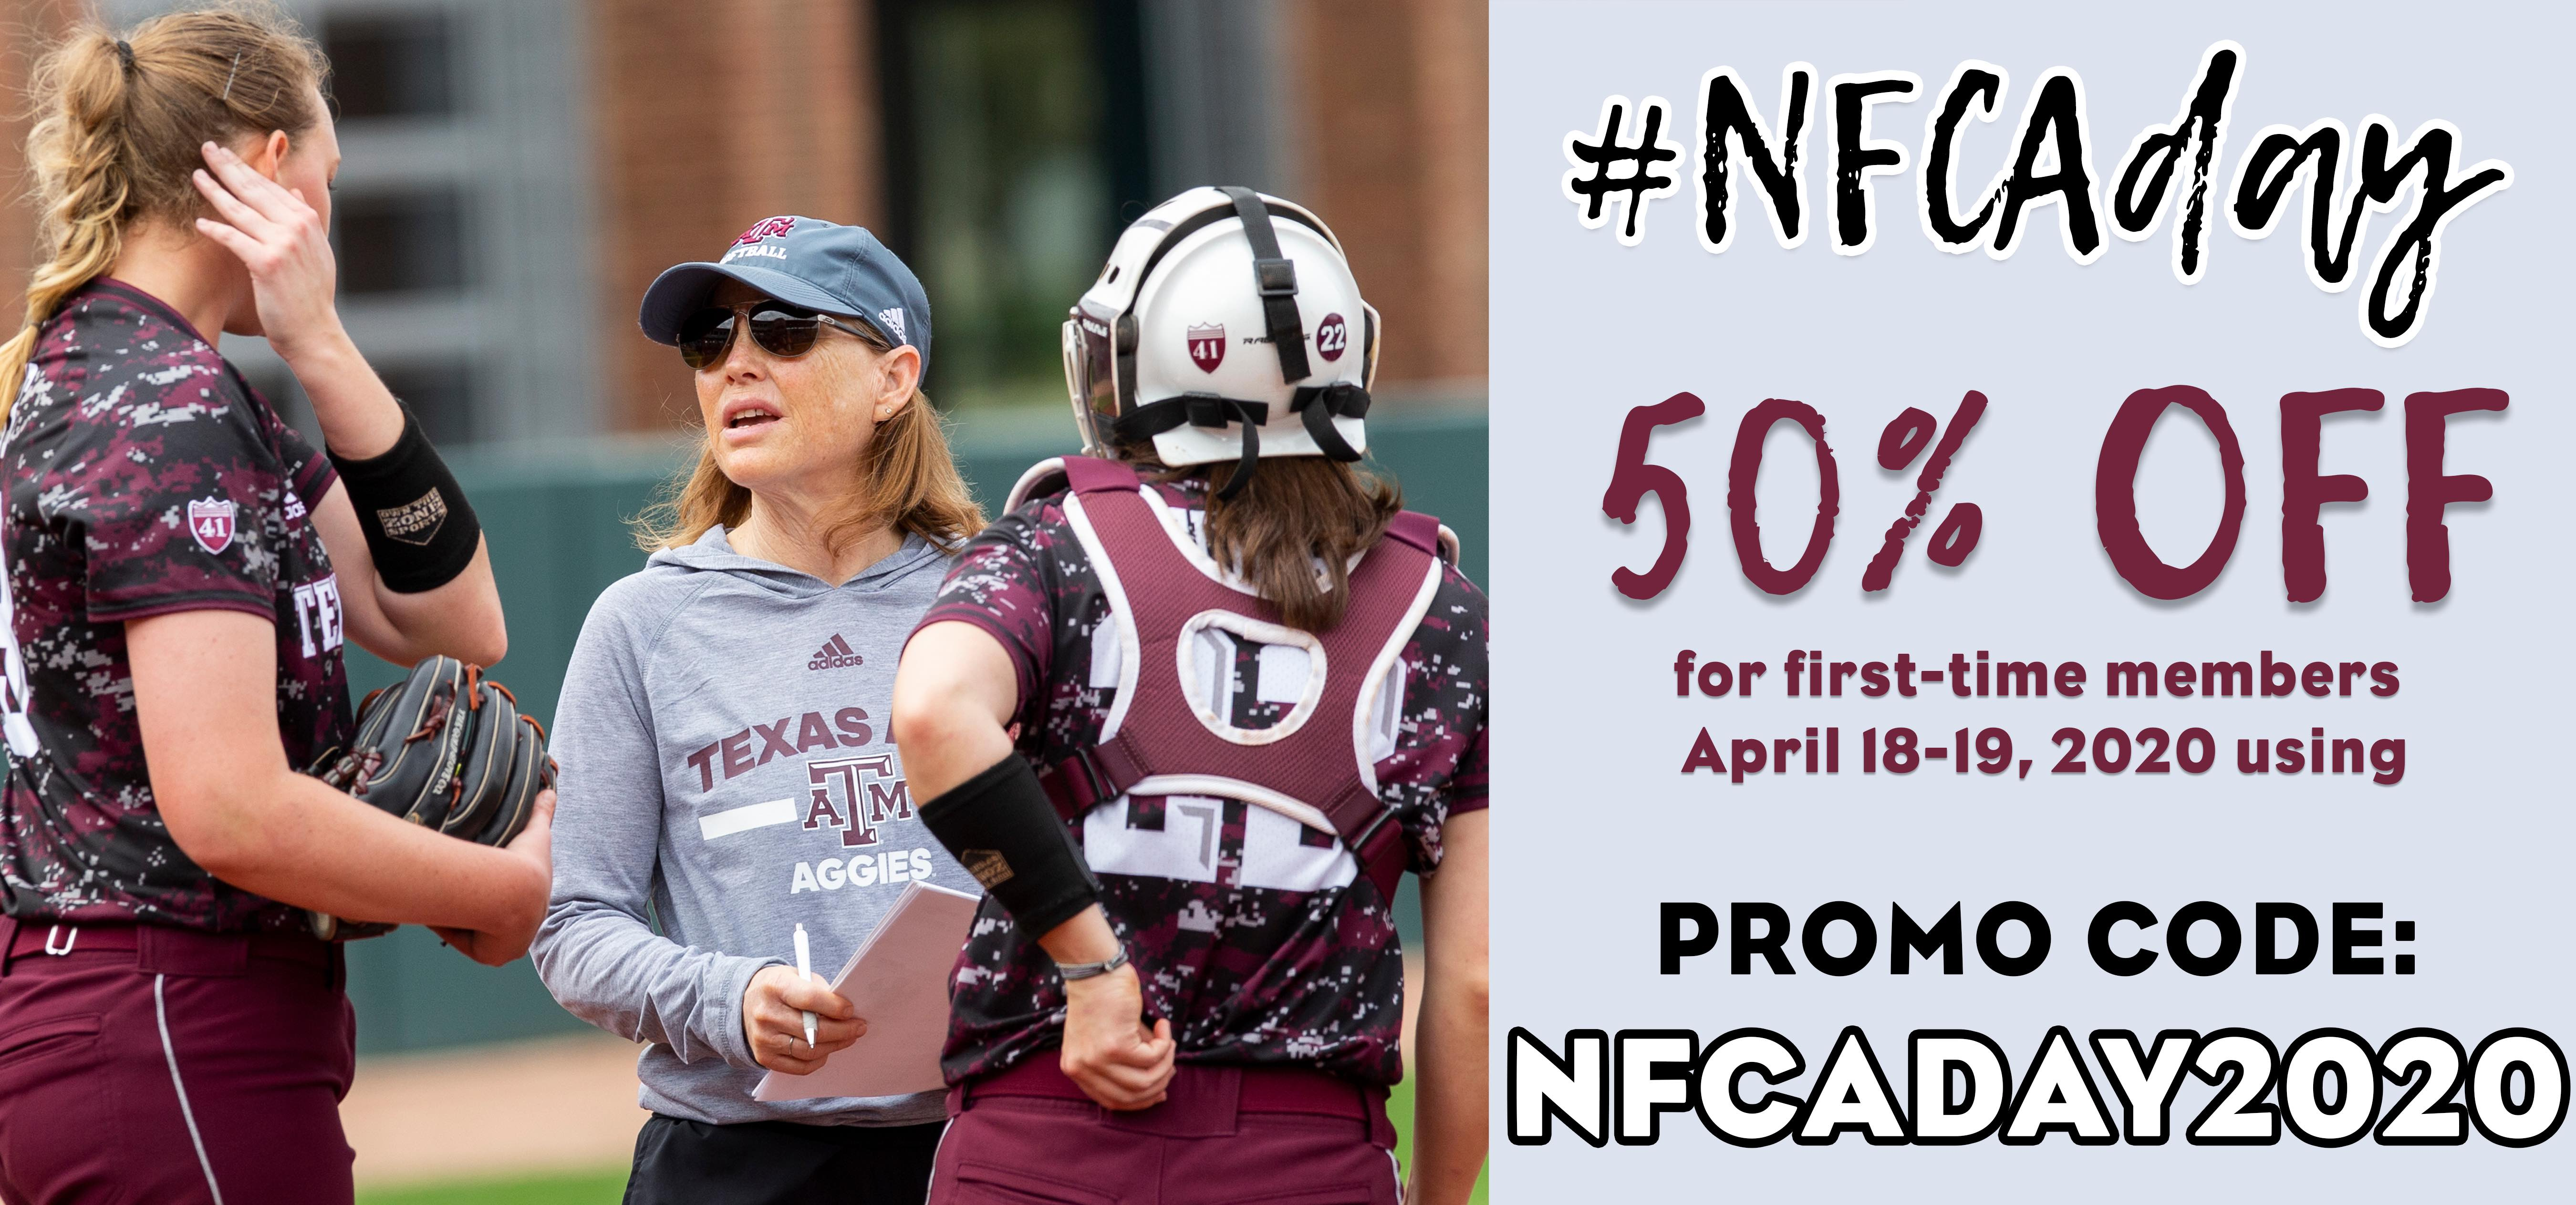 NFCA Day Promo Evans Discount small